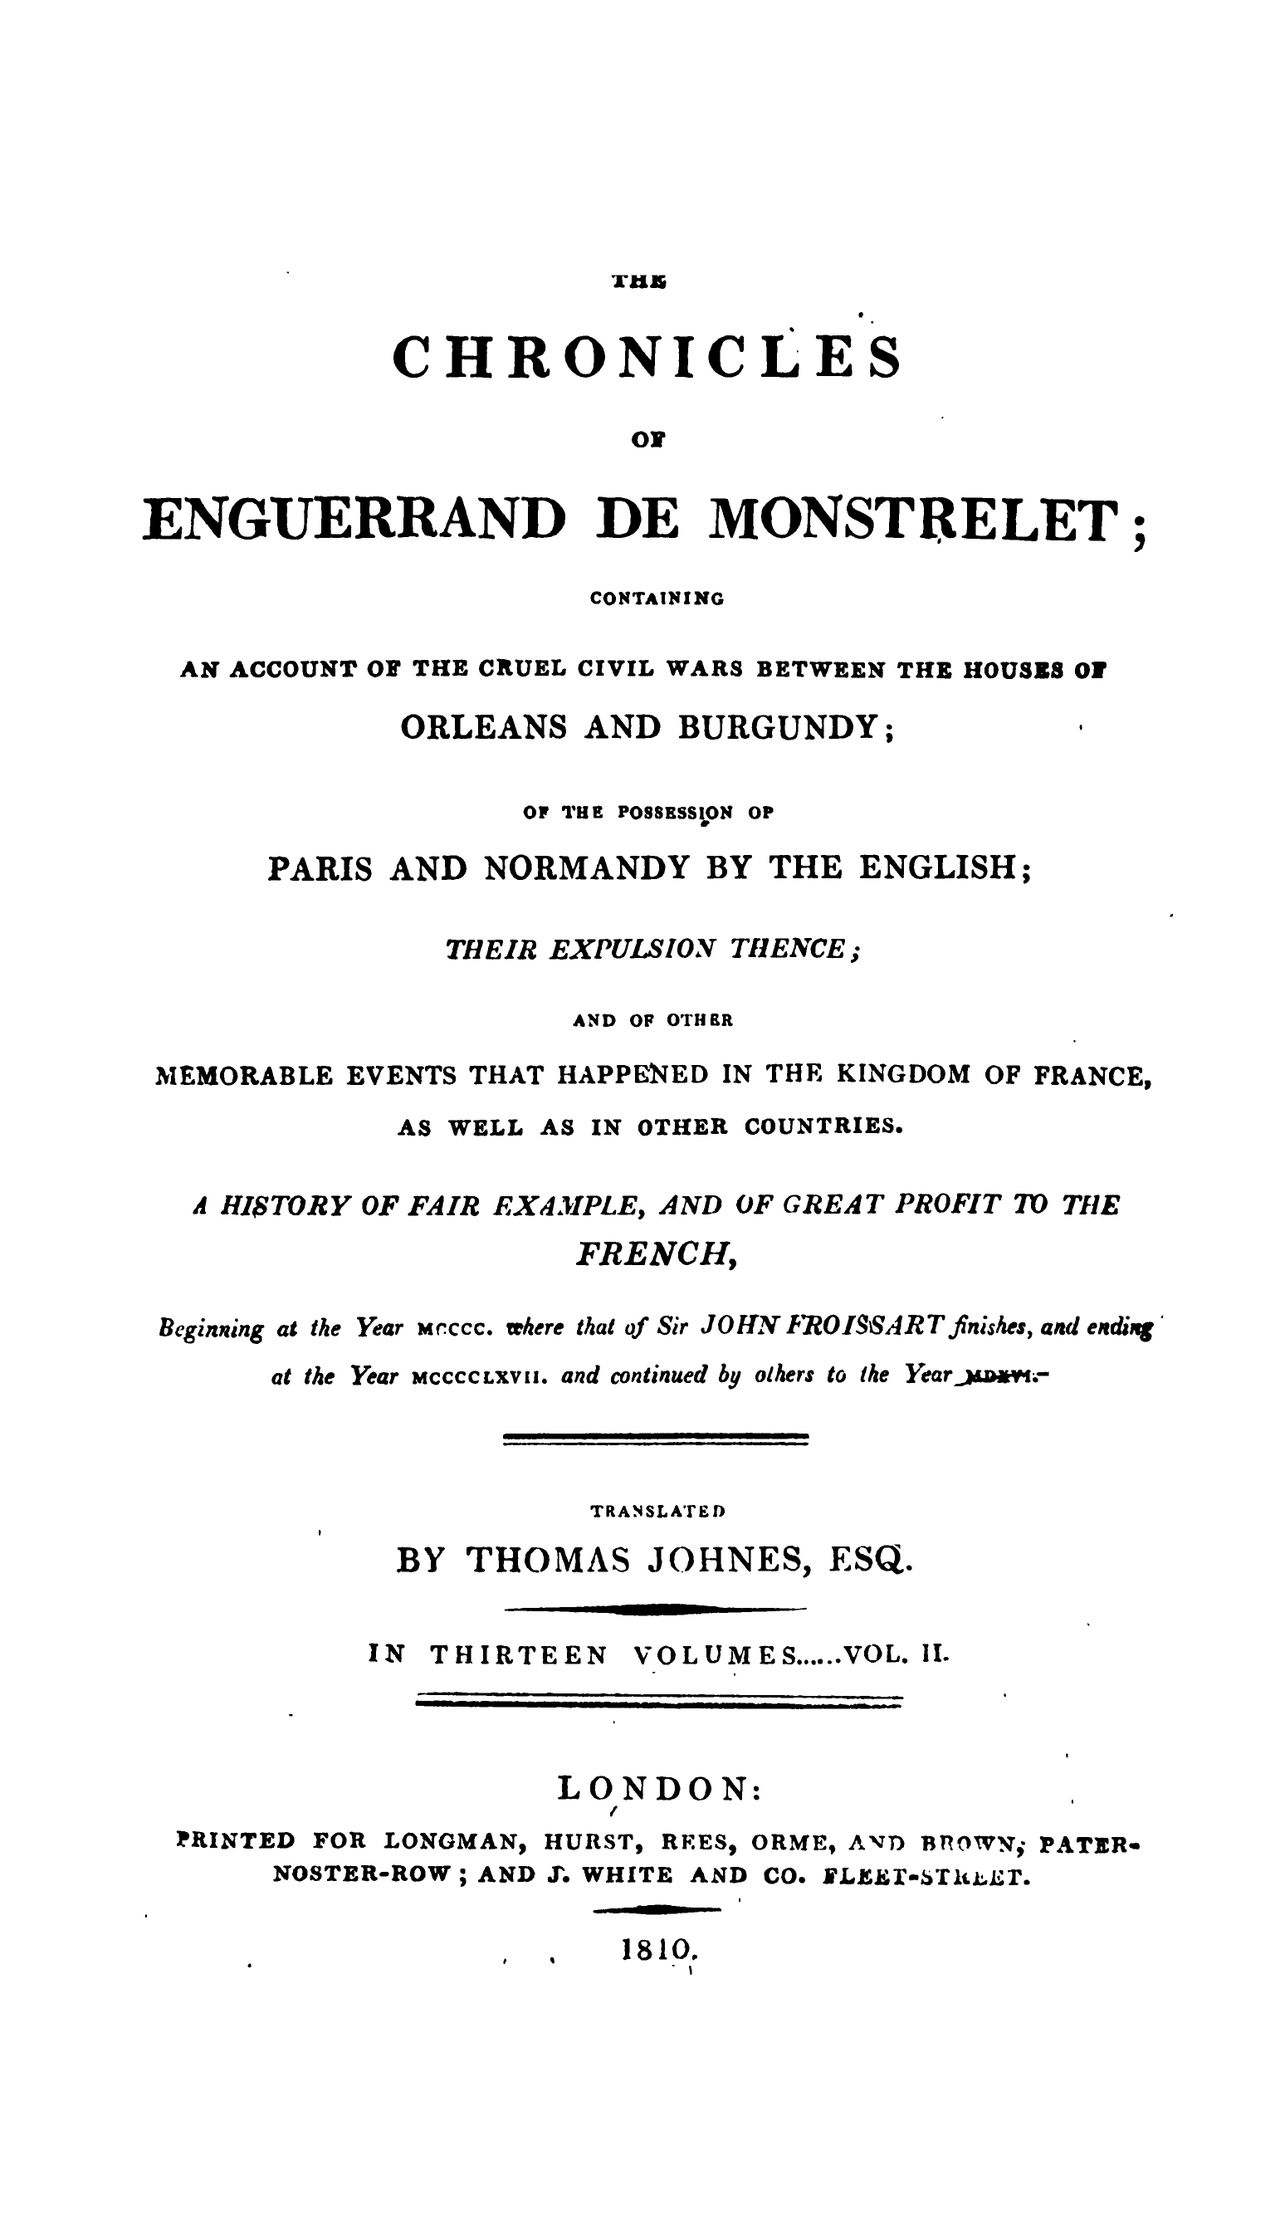 Enguerrand de Monstrelet chronicle v. 2